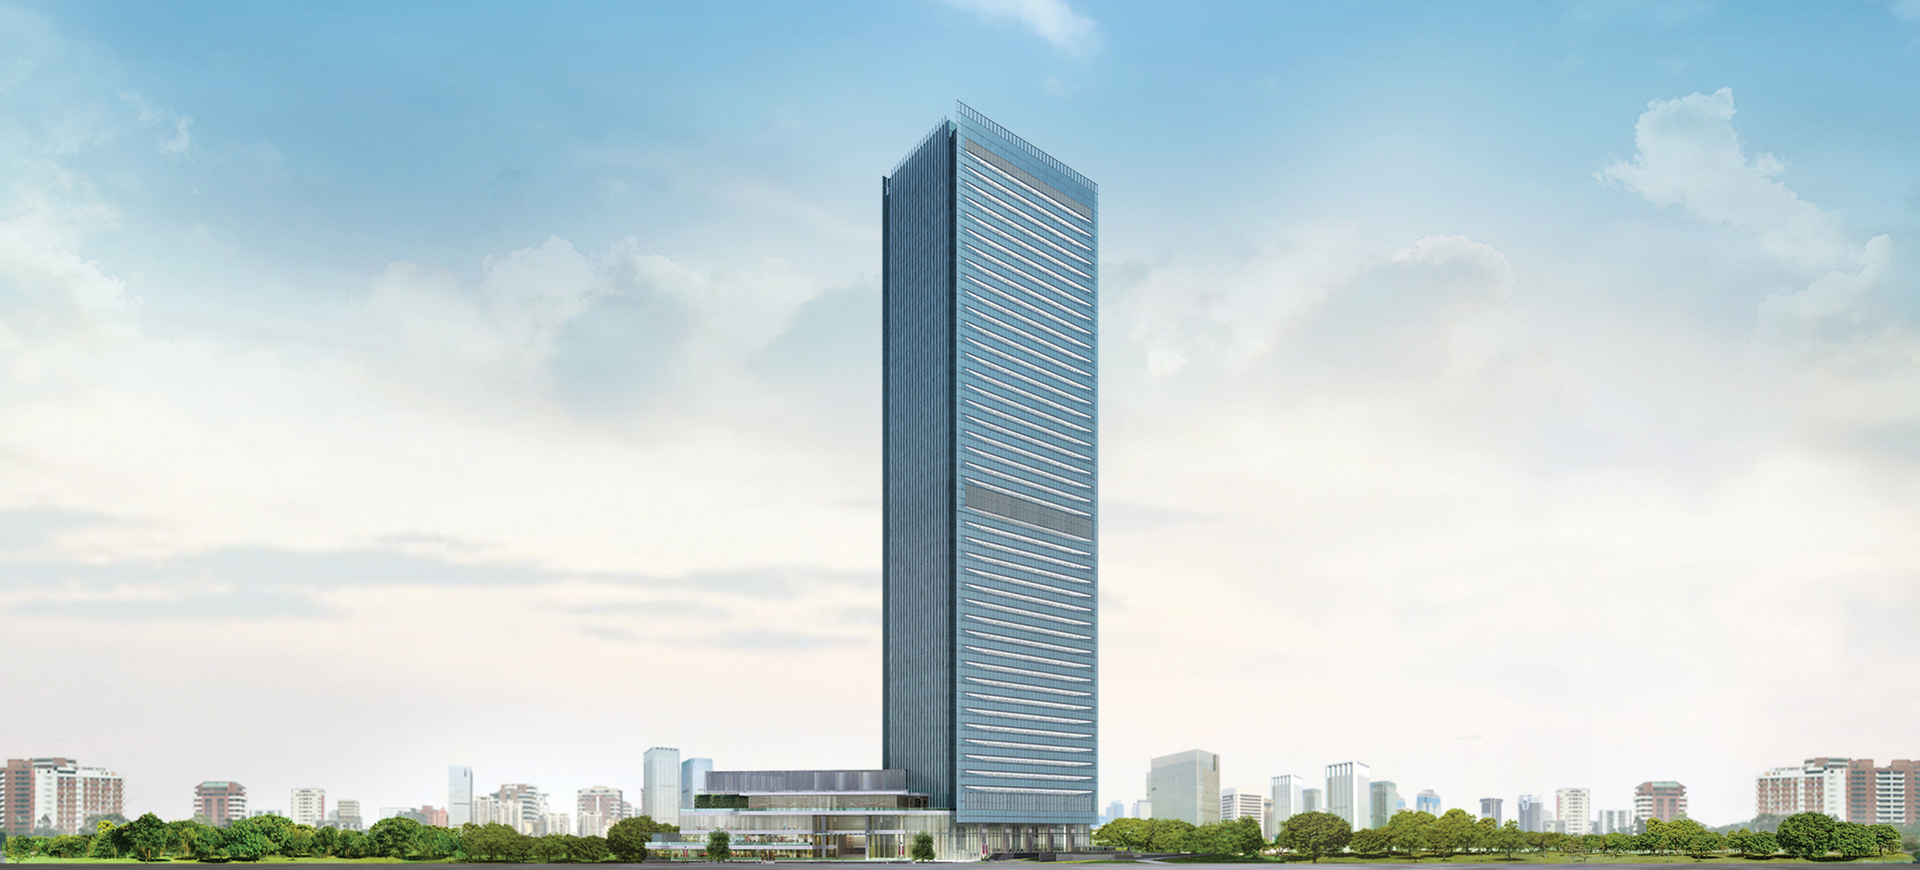 World Trade Centre 3 Tops Out in the Heart of Jakartas CBD --/PRNewswire/